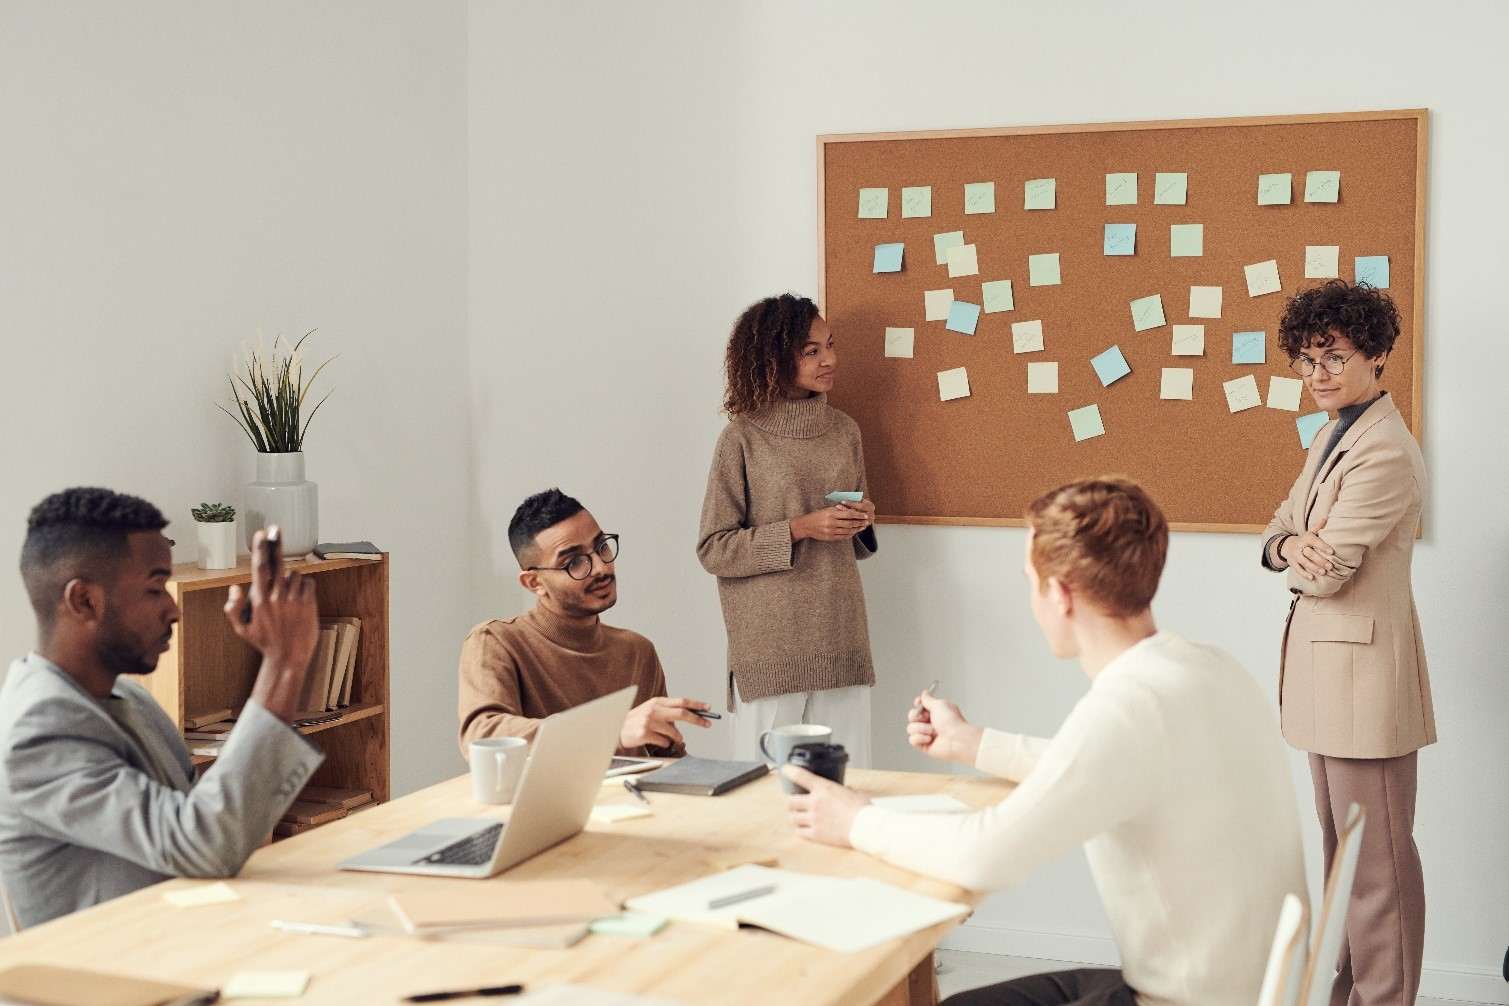 Group of people planning in meeting room around cork board